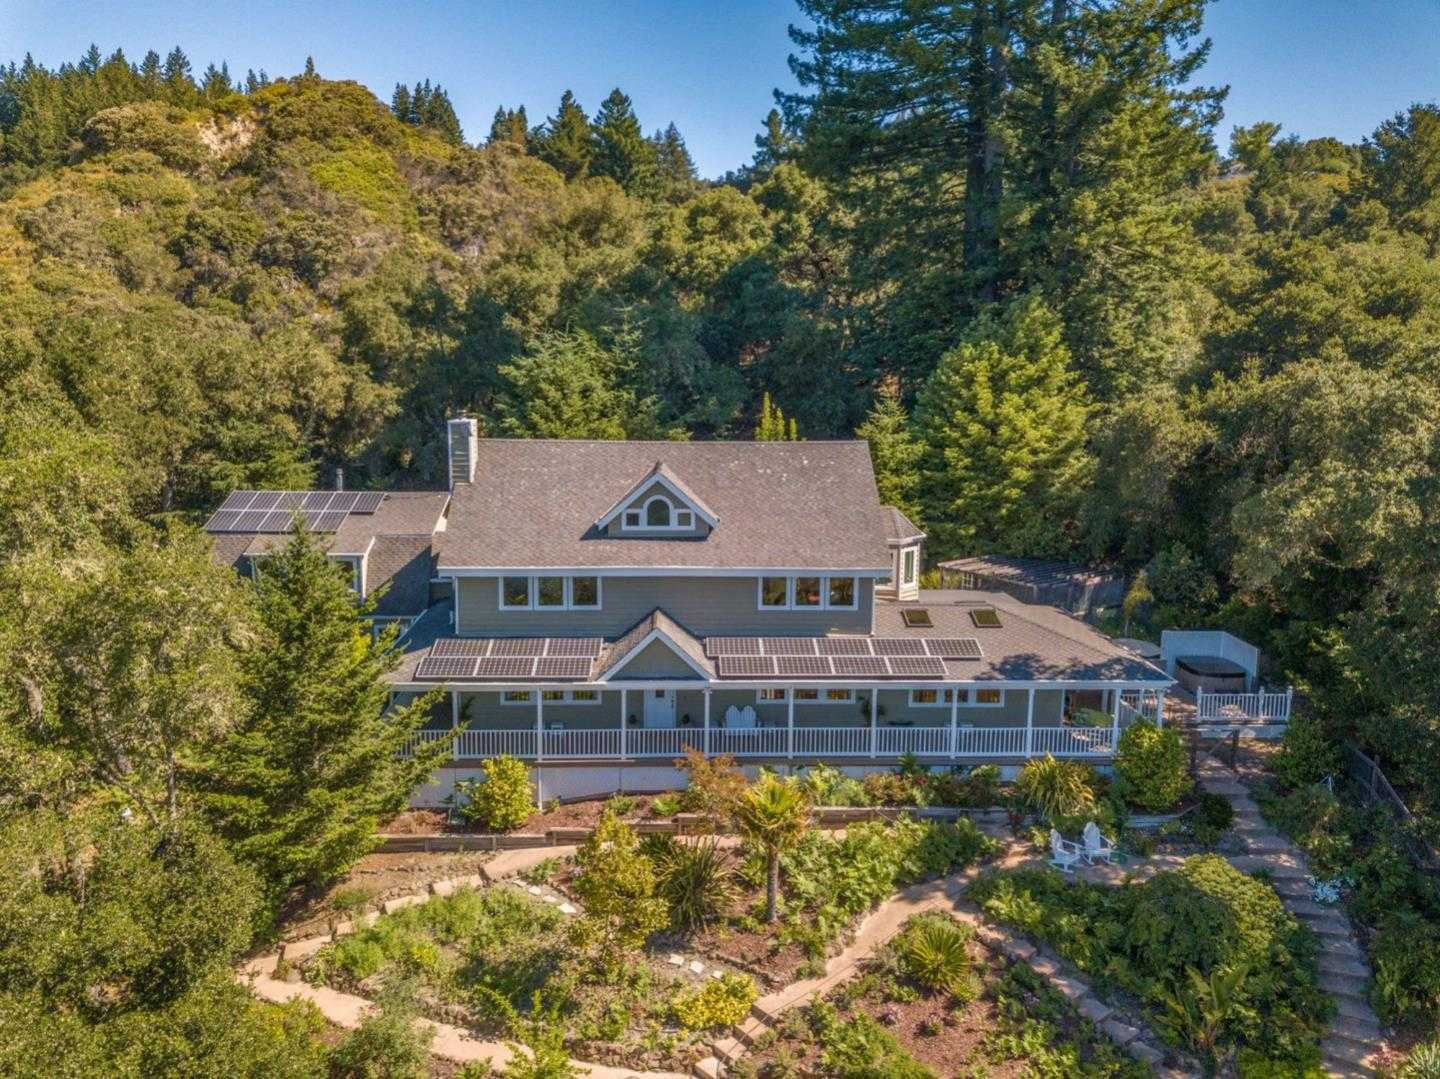 $1,849,000 - 4Br/4Ba -  for Sale in Scotts Valley